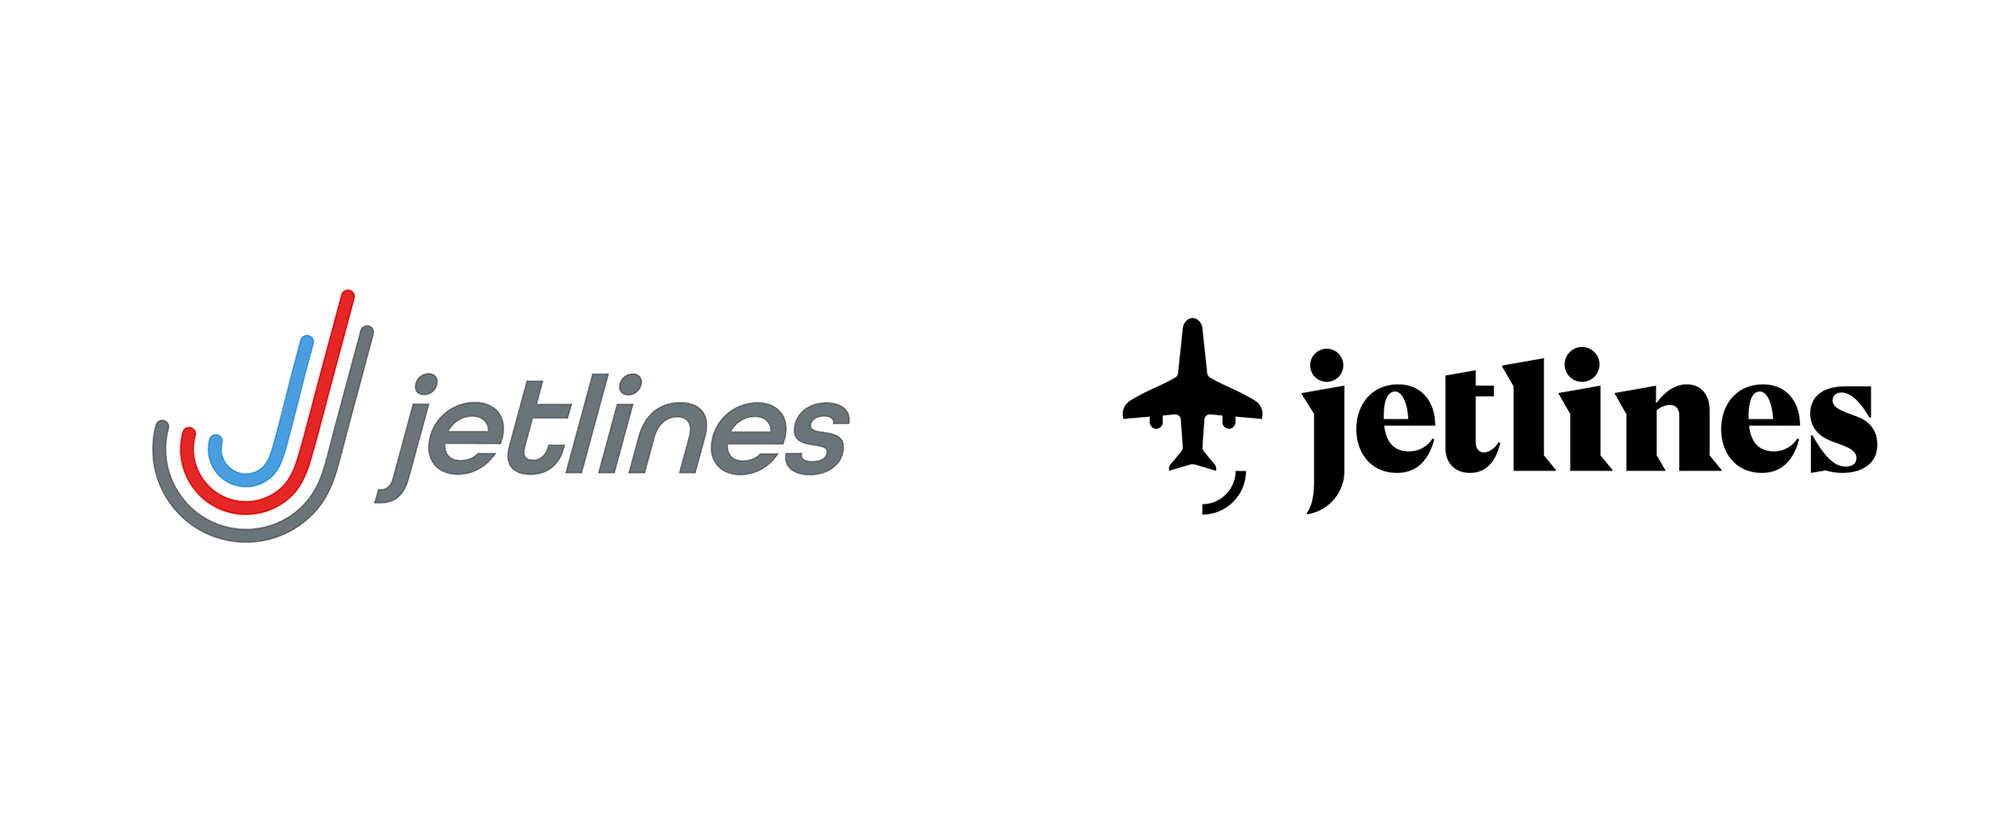 New Logo, Identity, and Livery for Canada Jetlines by Cossette